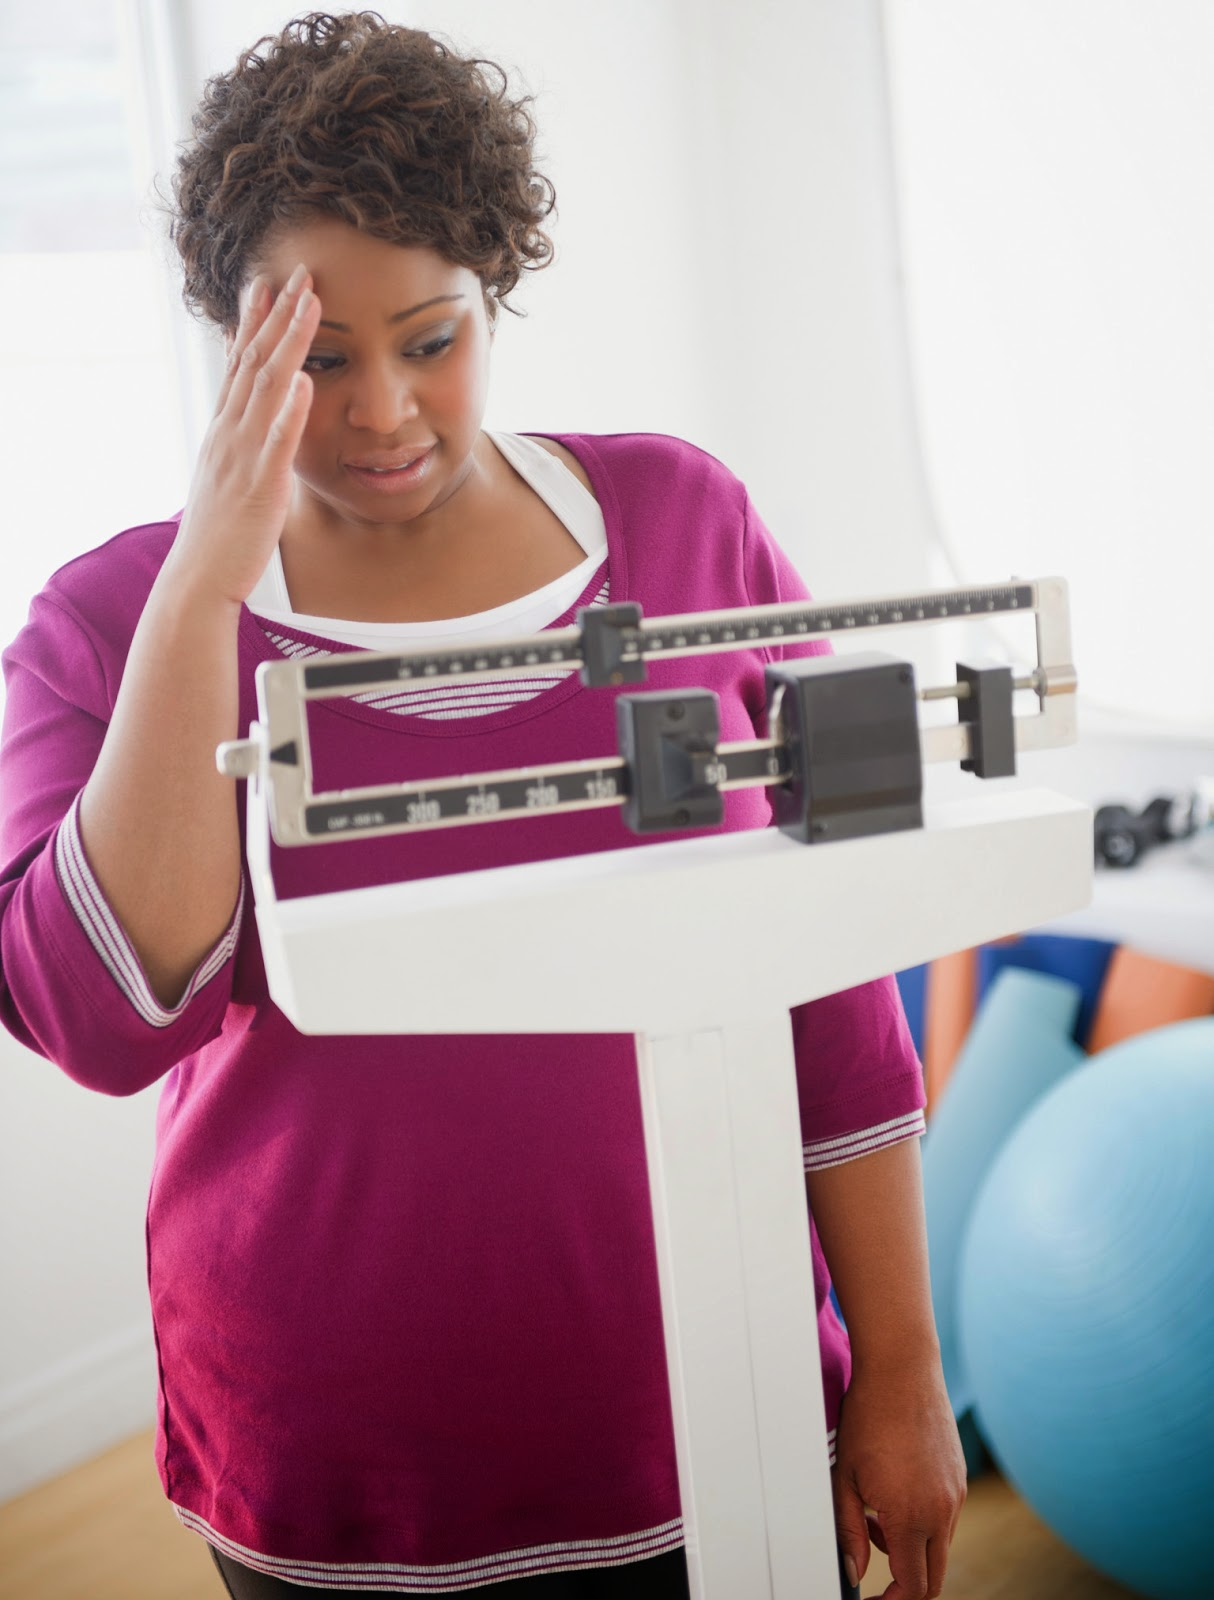 Worry about your weight ? Find your way to lose weight here